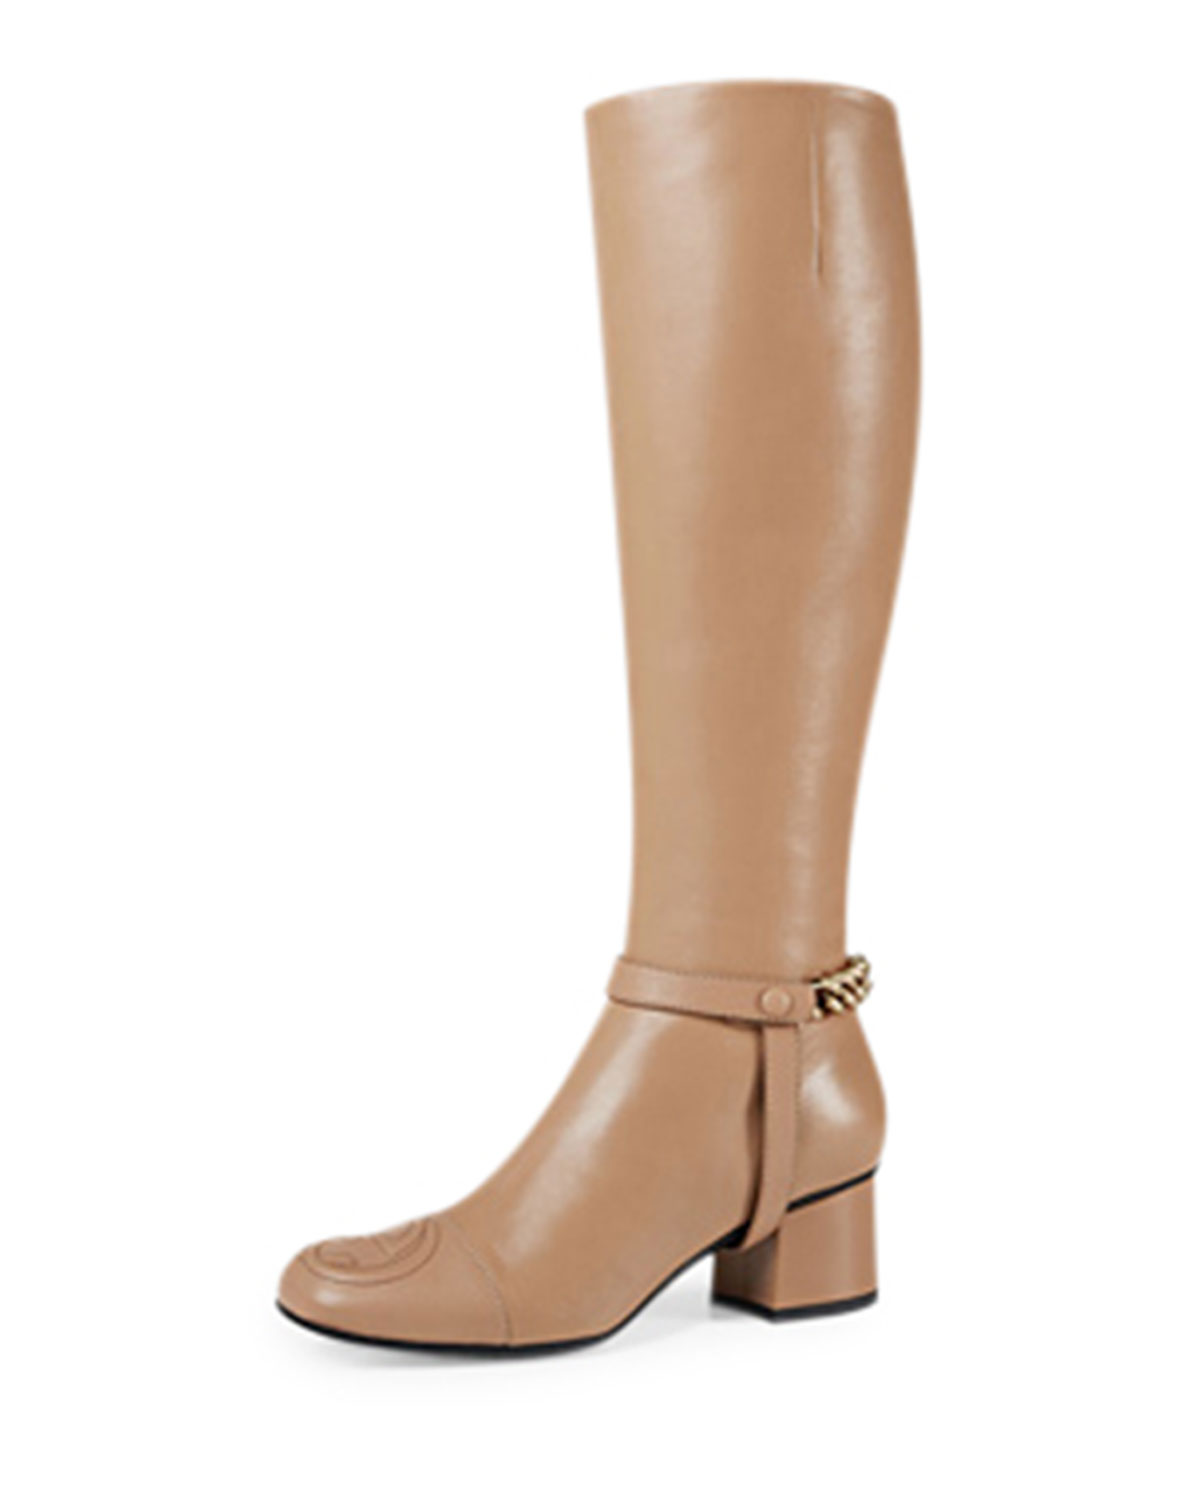 79c611718eb1 Gucci Soho Chained Leather Knee Boot